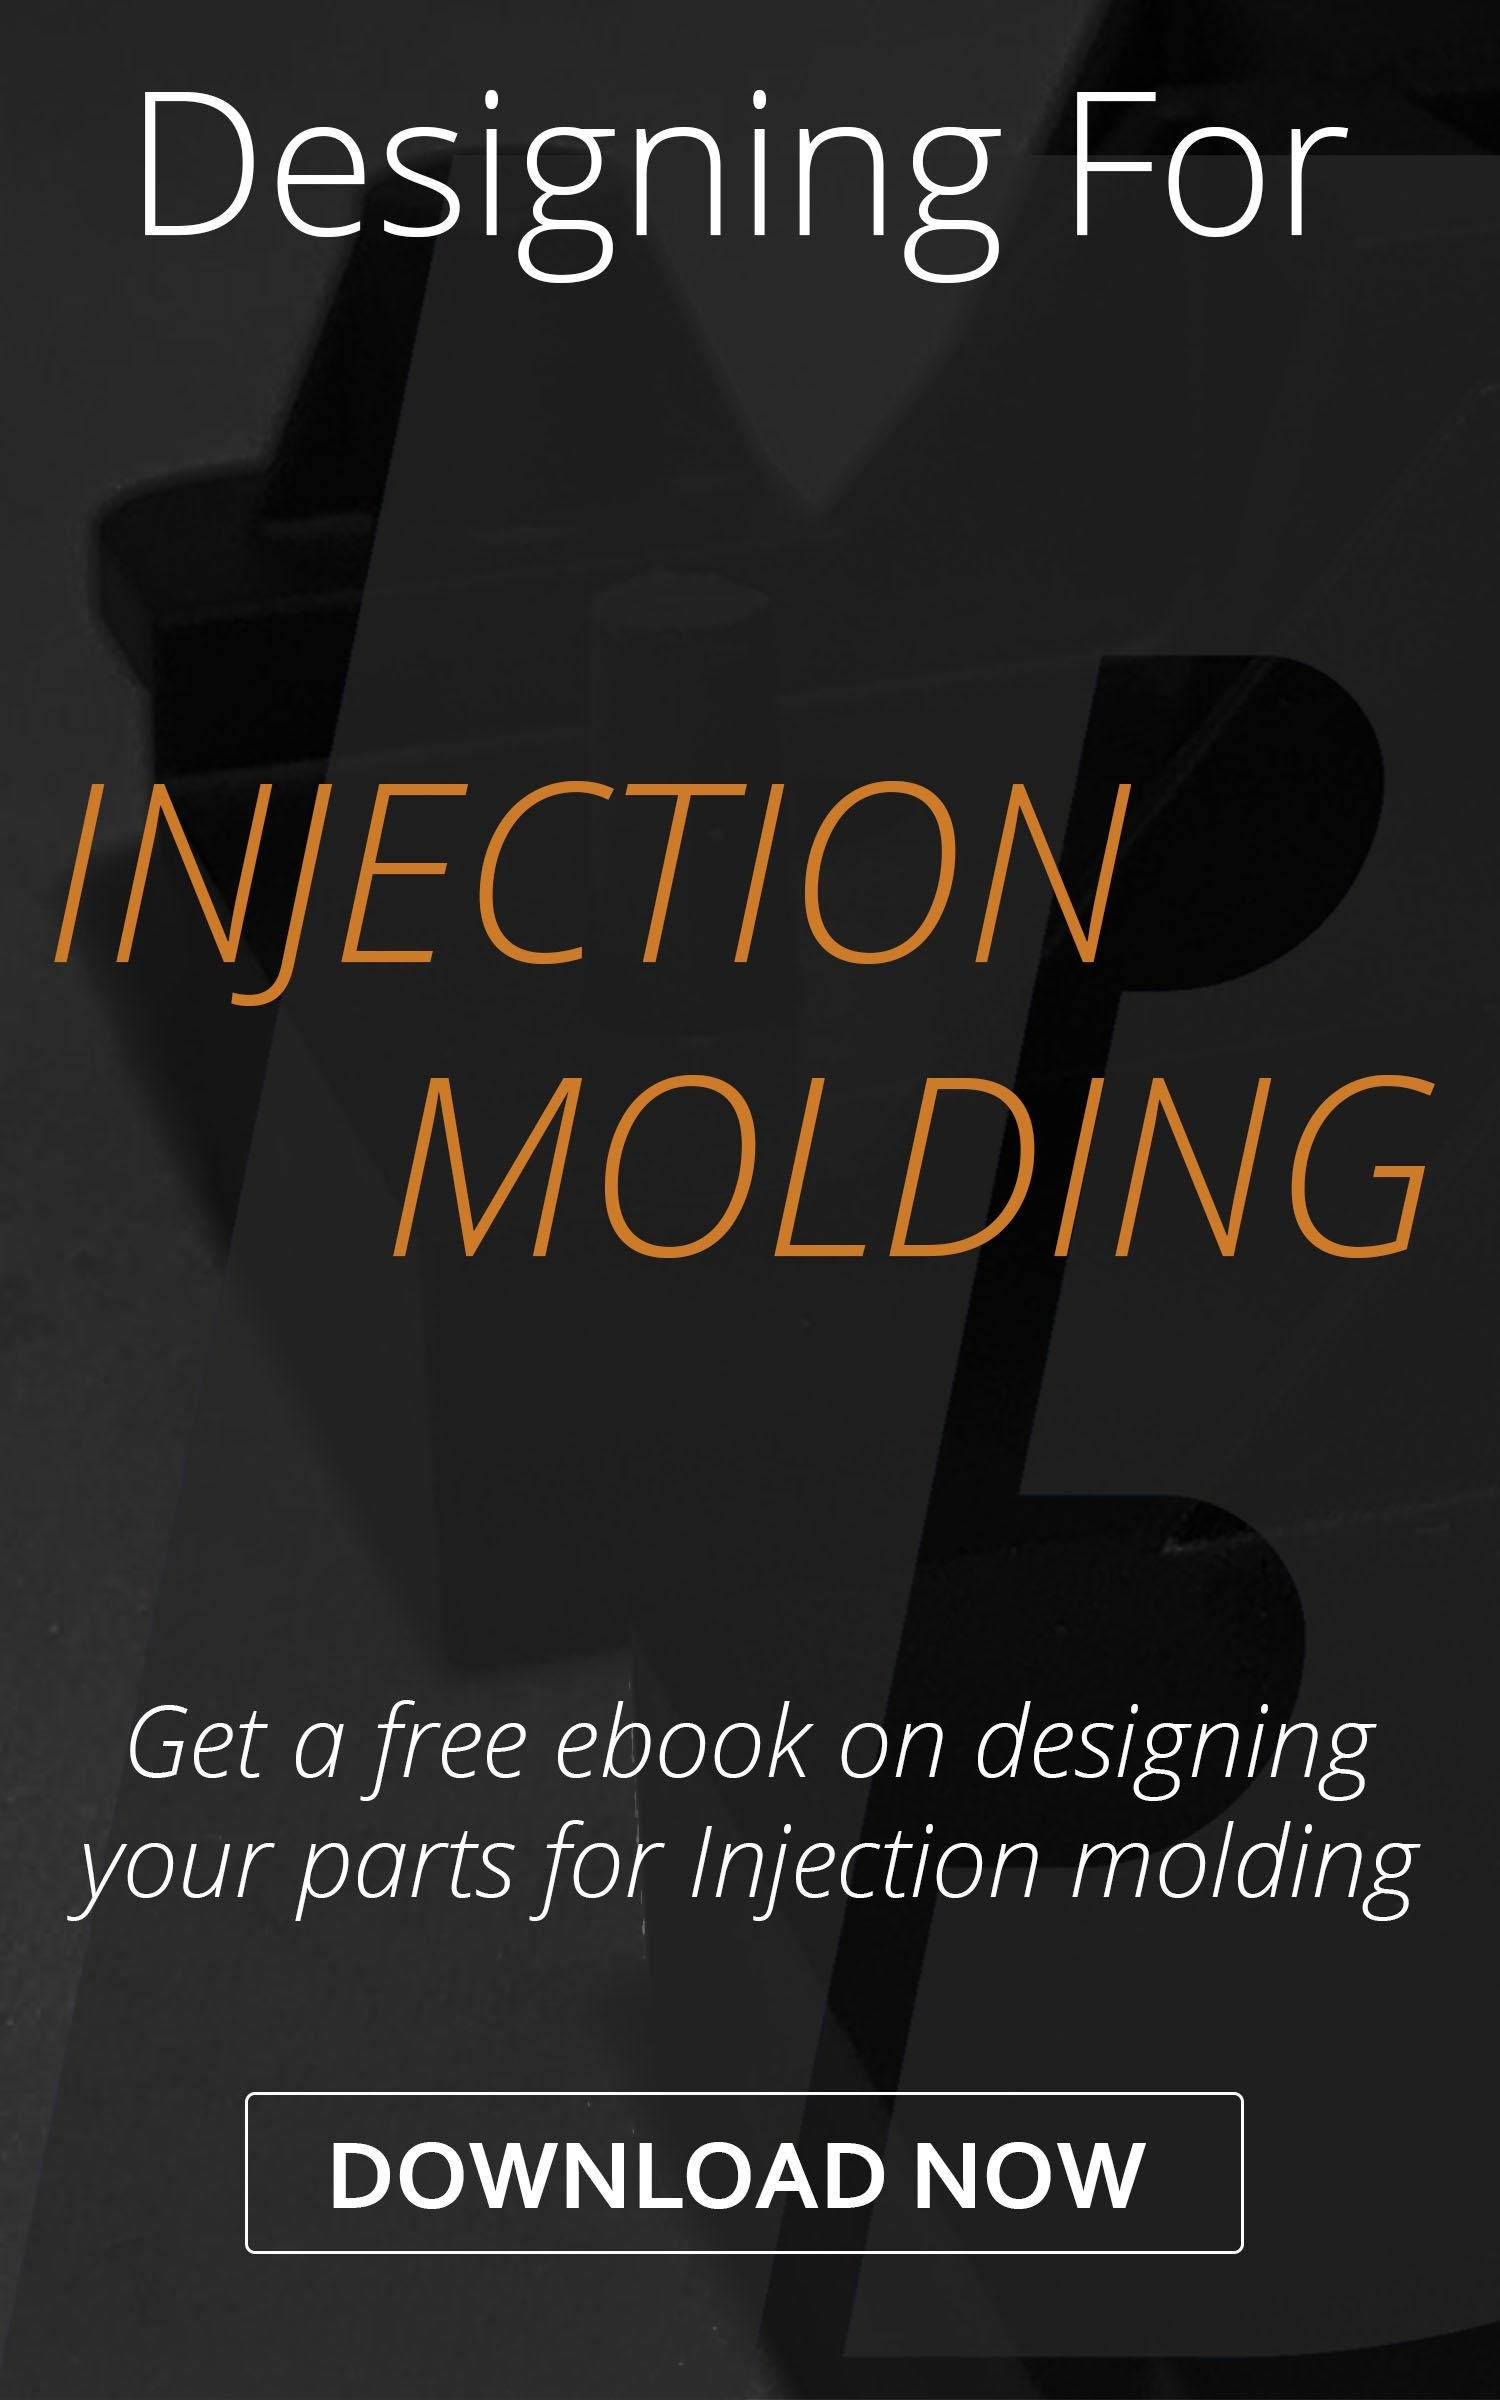 Designing for Injection Molding